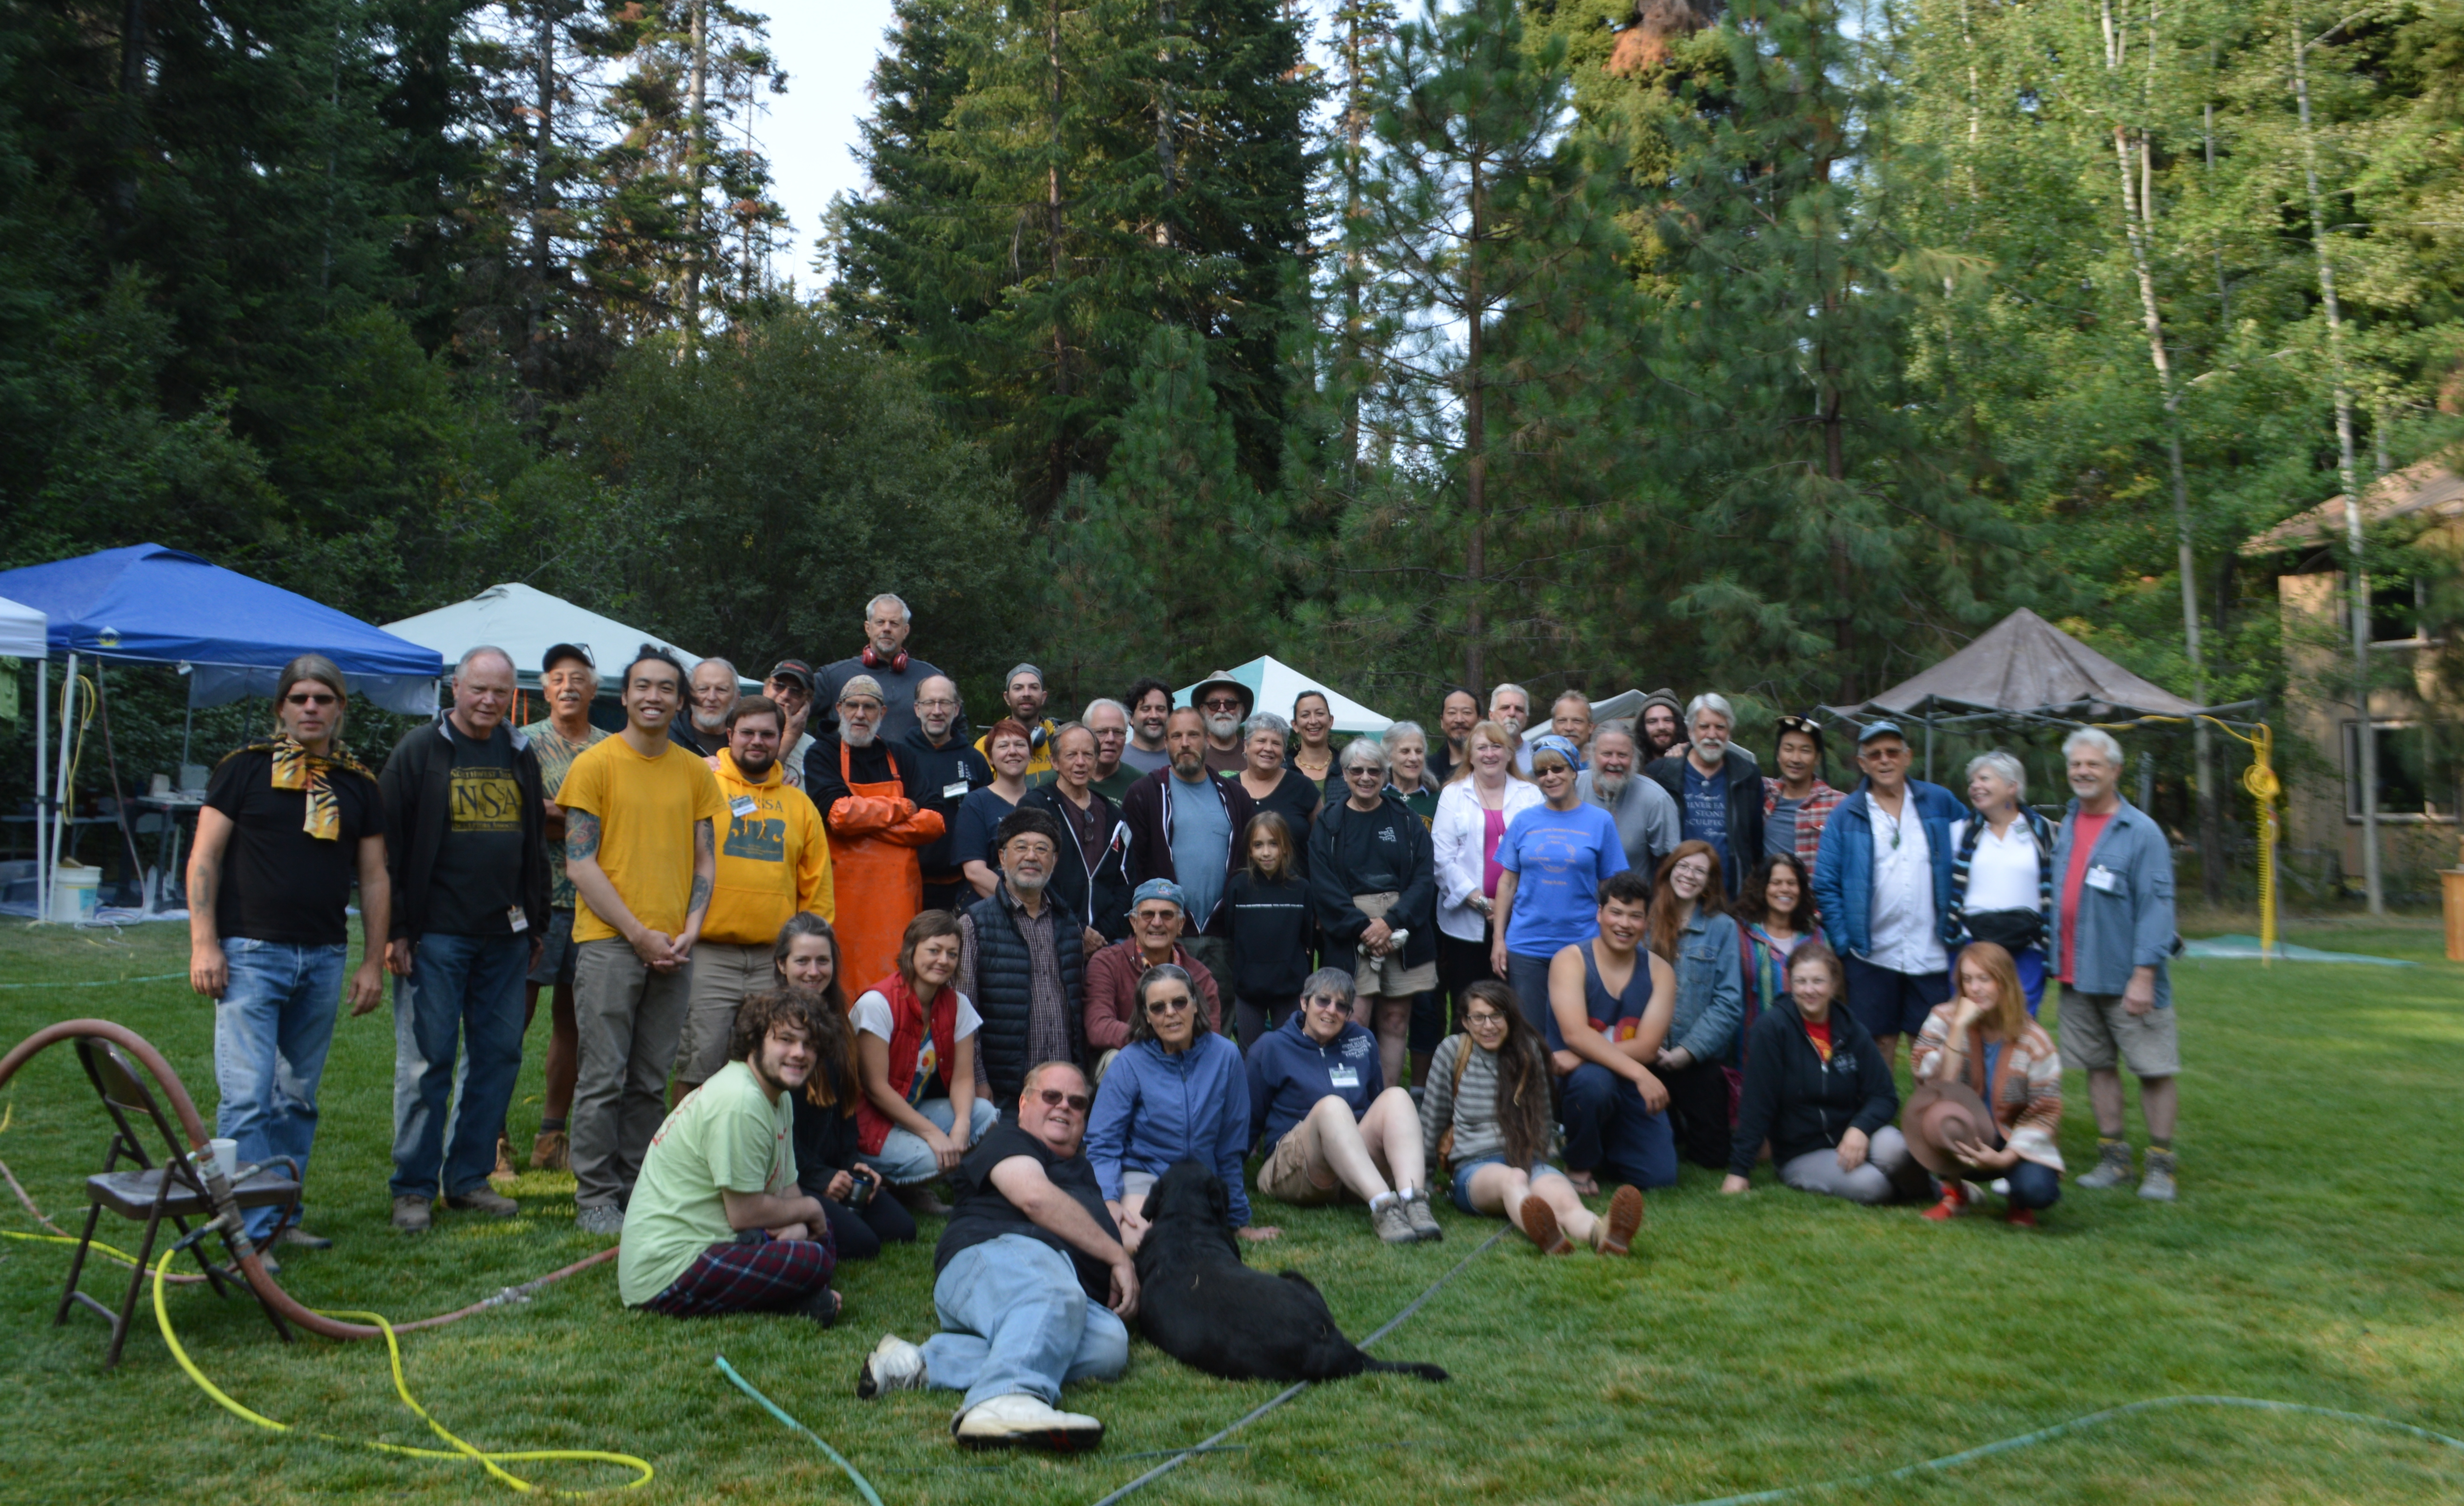 2018 NWSSA Suttle Lake Group shot